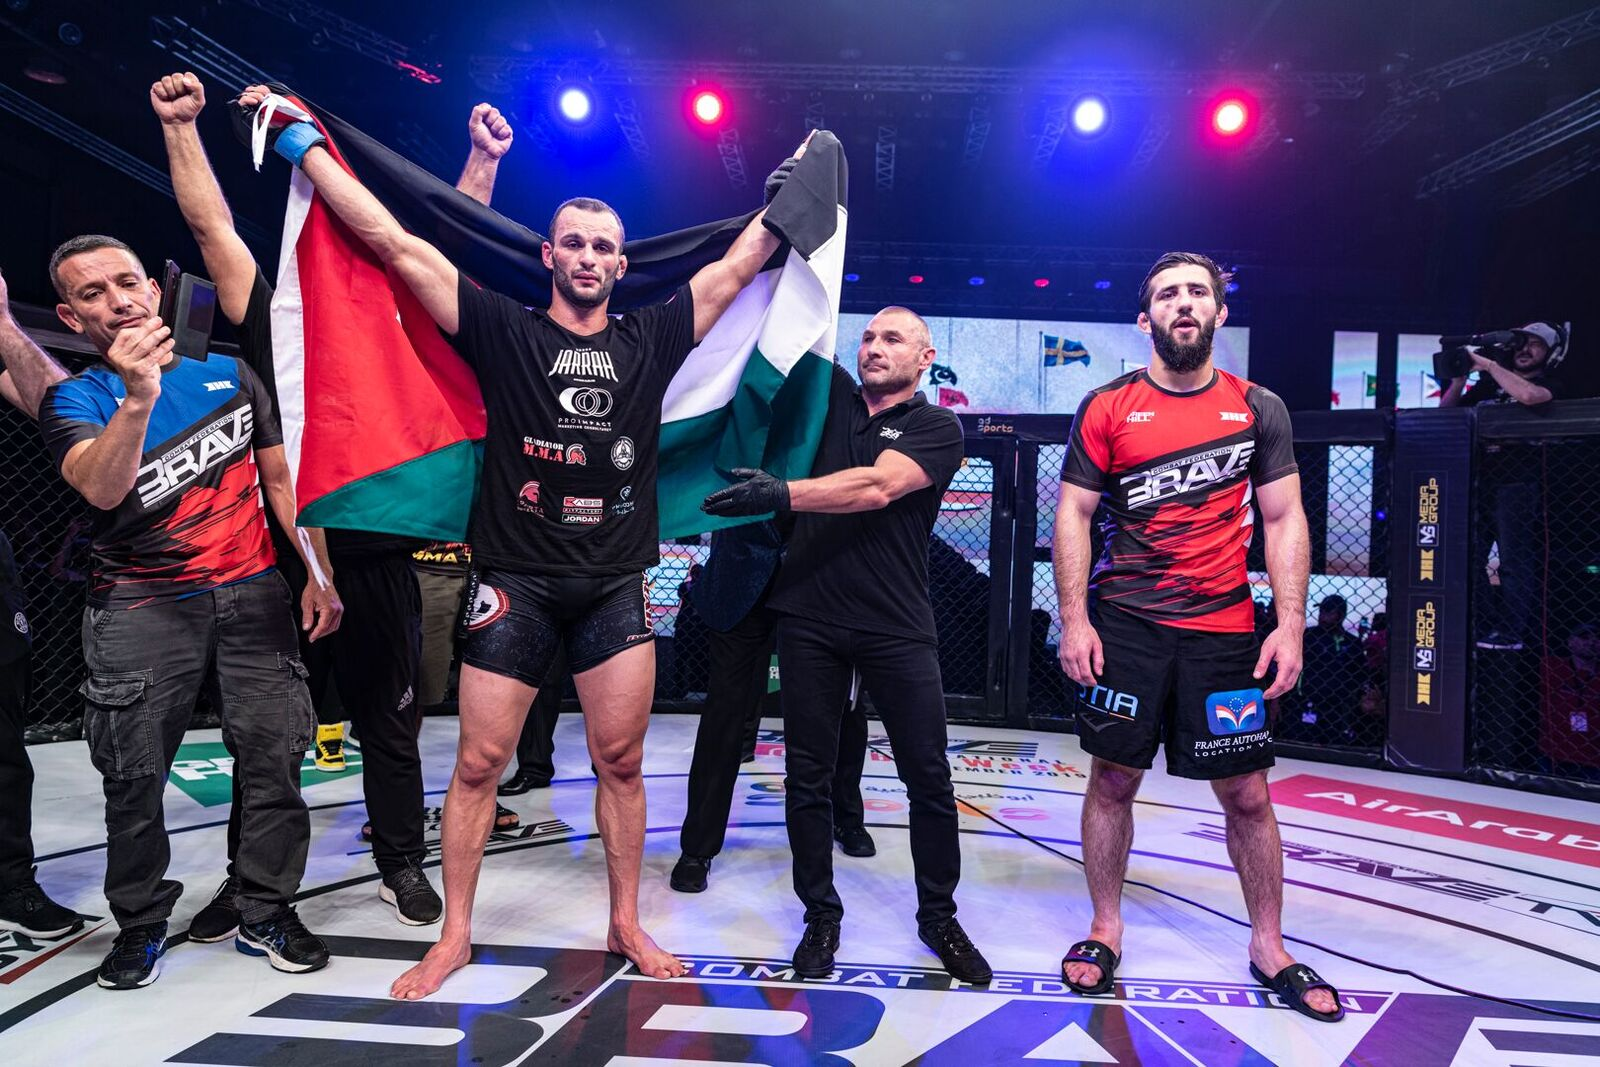 Al-Selawe dominates, avenges loss to arch-rival Abdoul and reclaims BRAVE CF title - Abu-dhabi